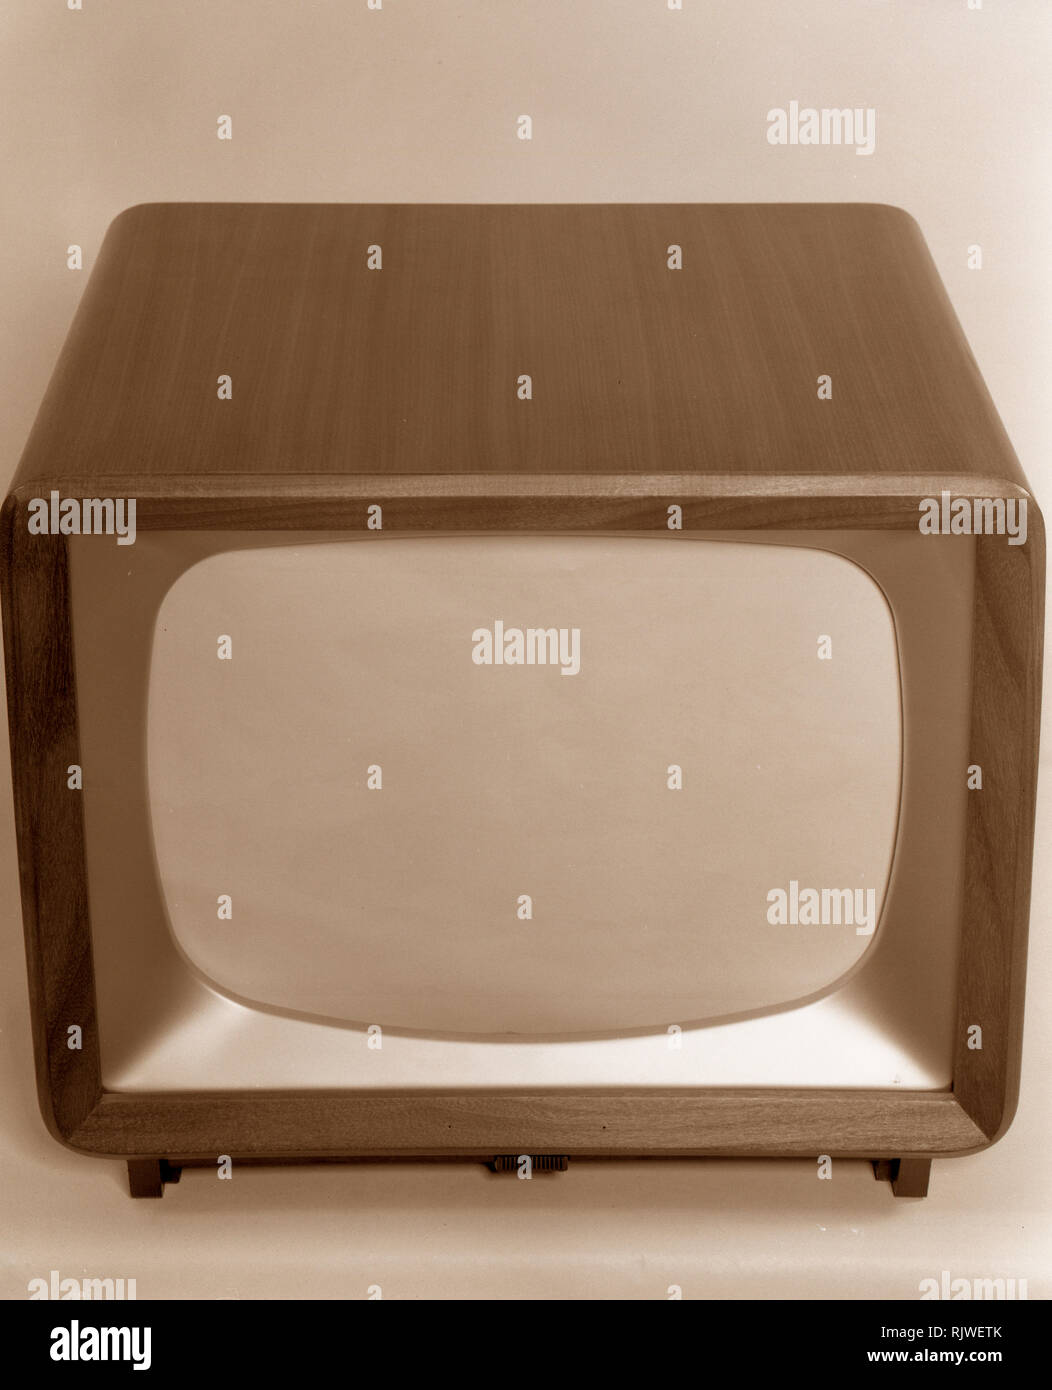 Television in the 1950s. A typical tv furniture in a wooden casing with a small tv-screen. ref 3789. Sweden 1958 - Stock Image